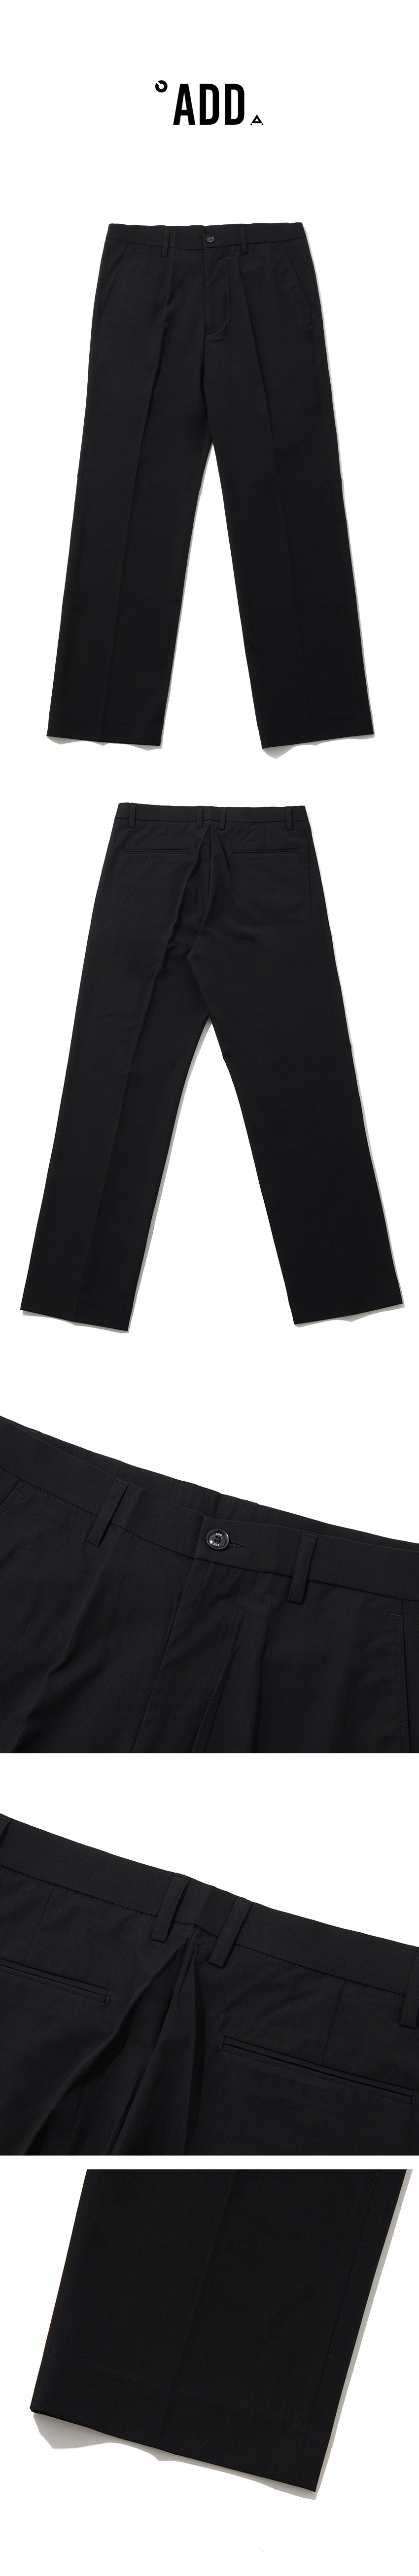 에드(ADD) [여름]LONG WIDE SLACKS_SS BLACK